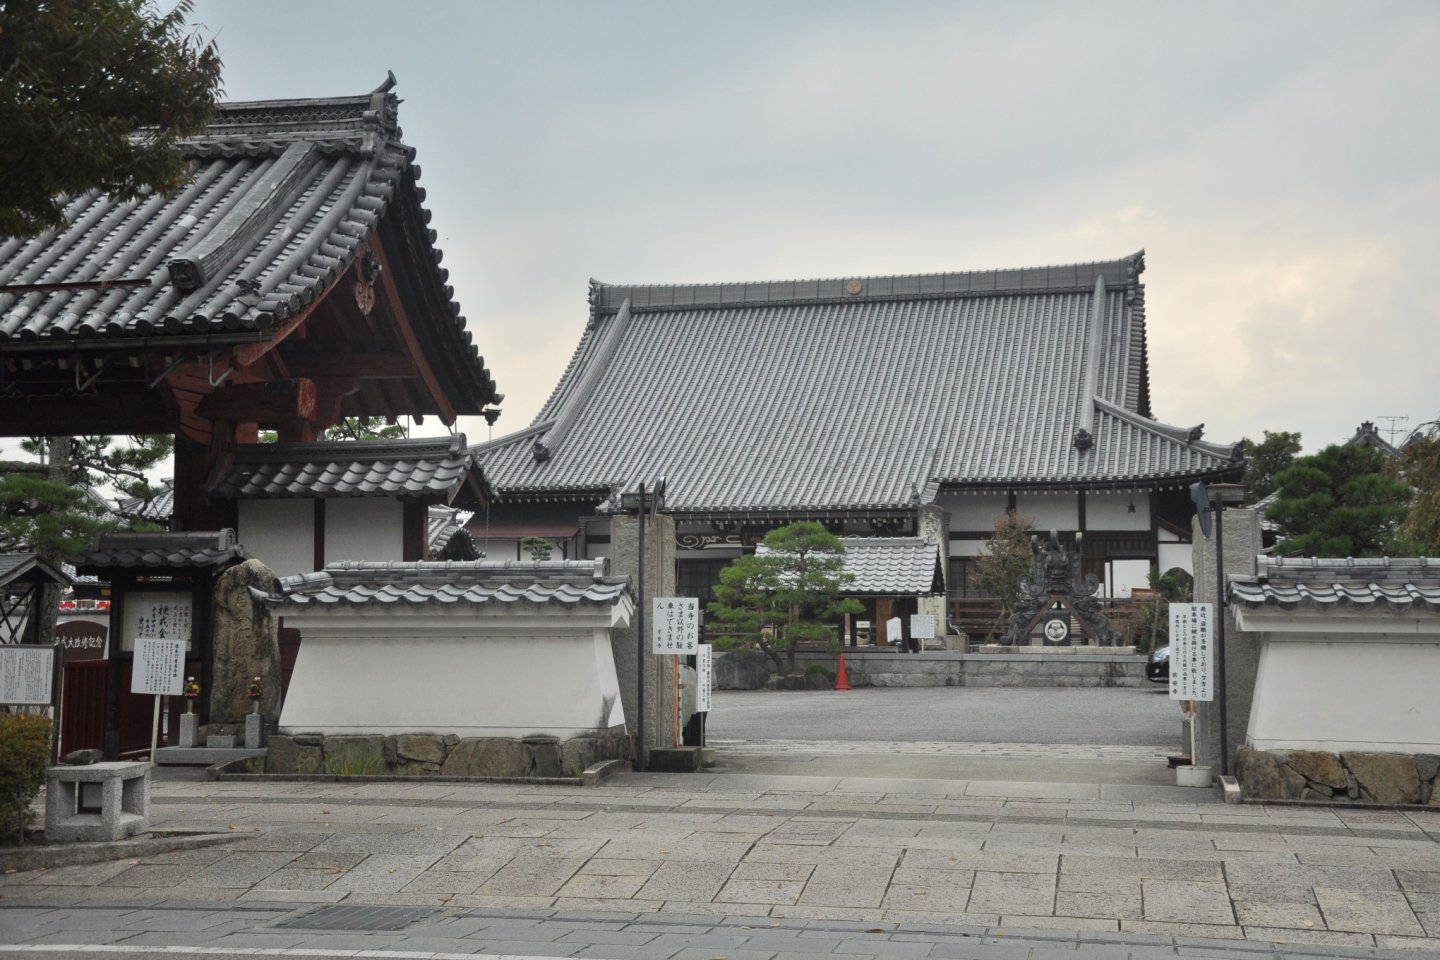 Temples dotted in the main tourist district